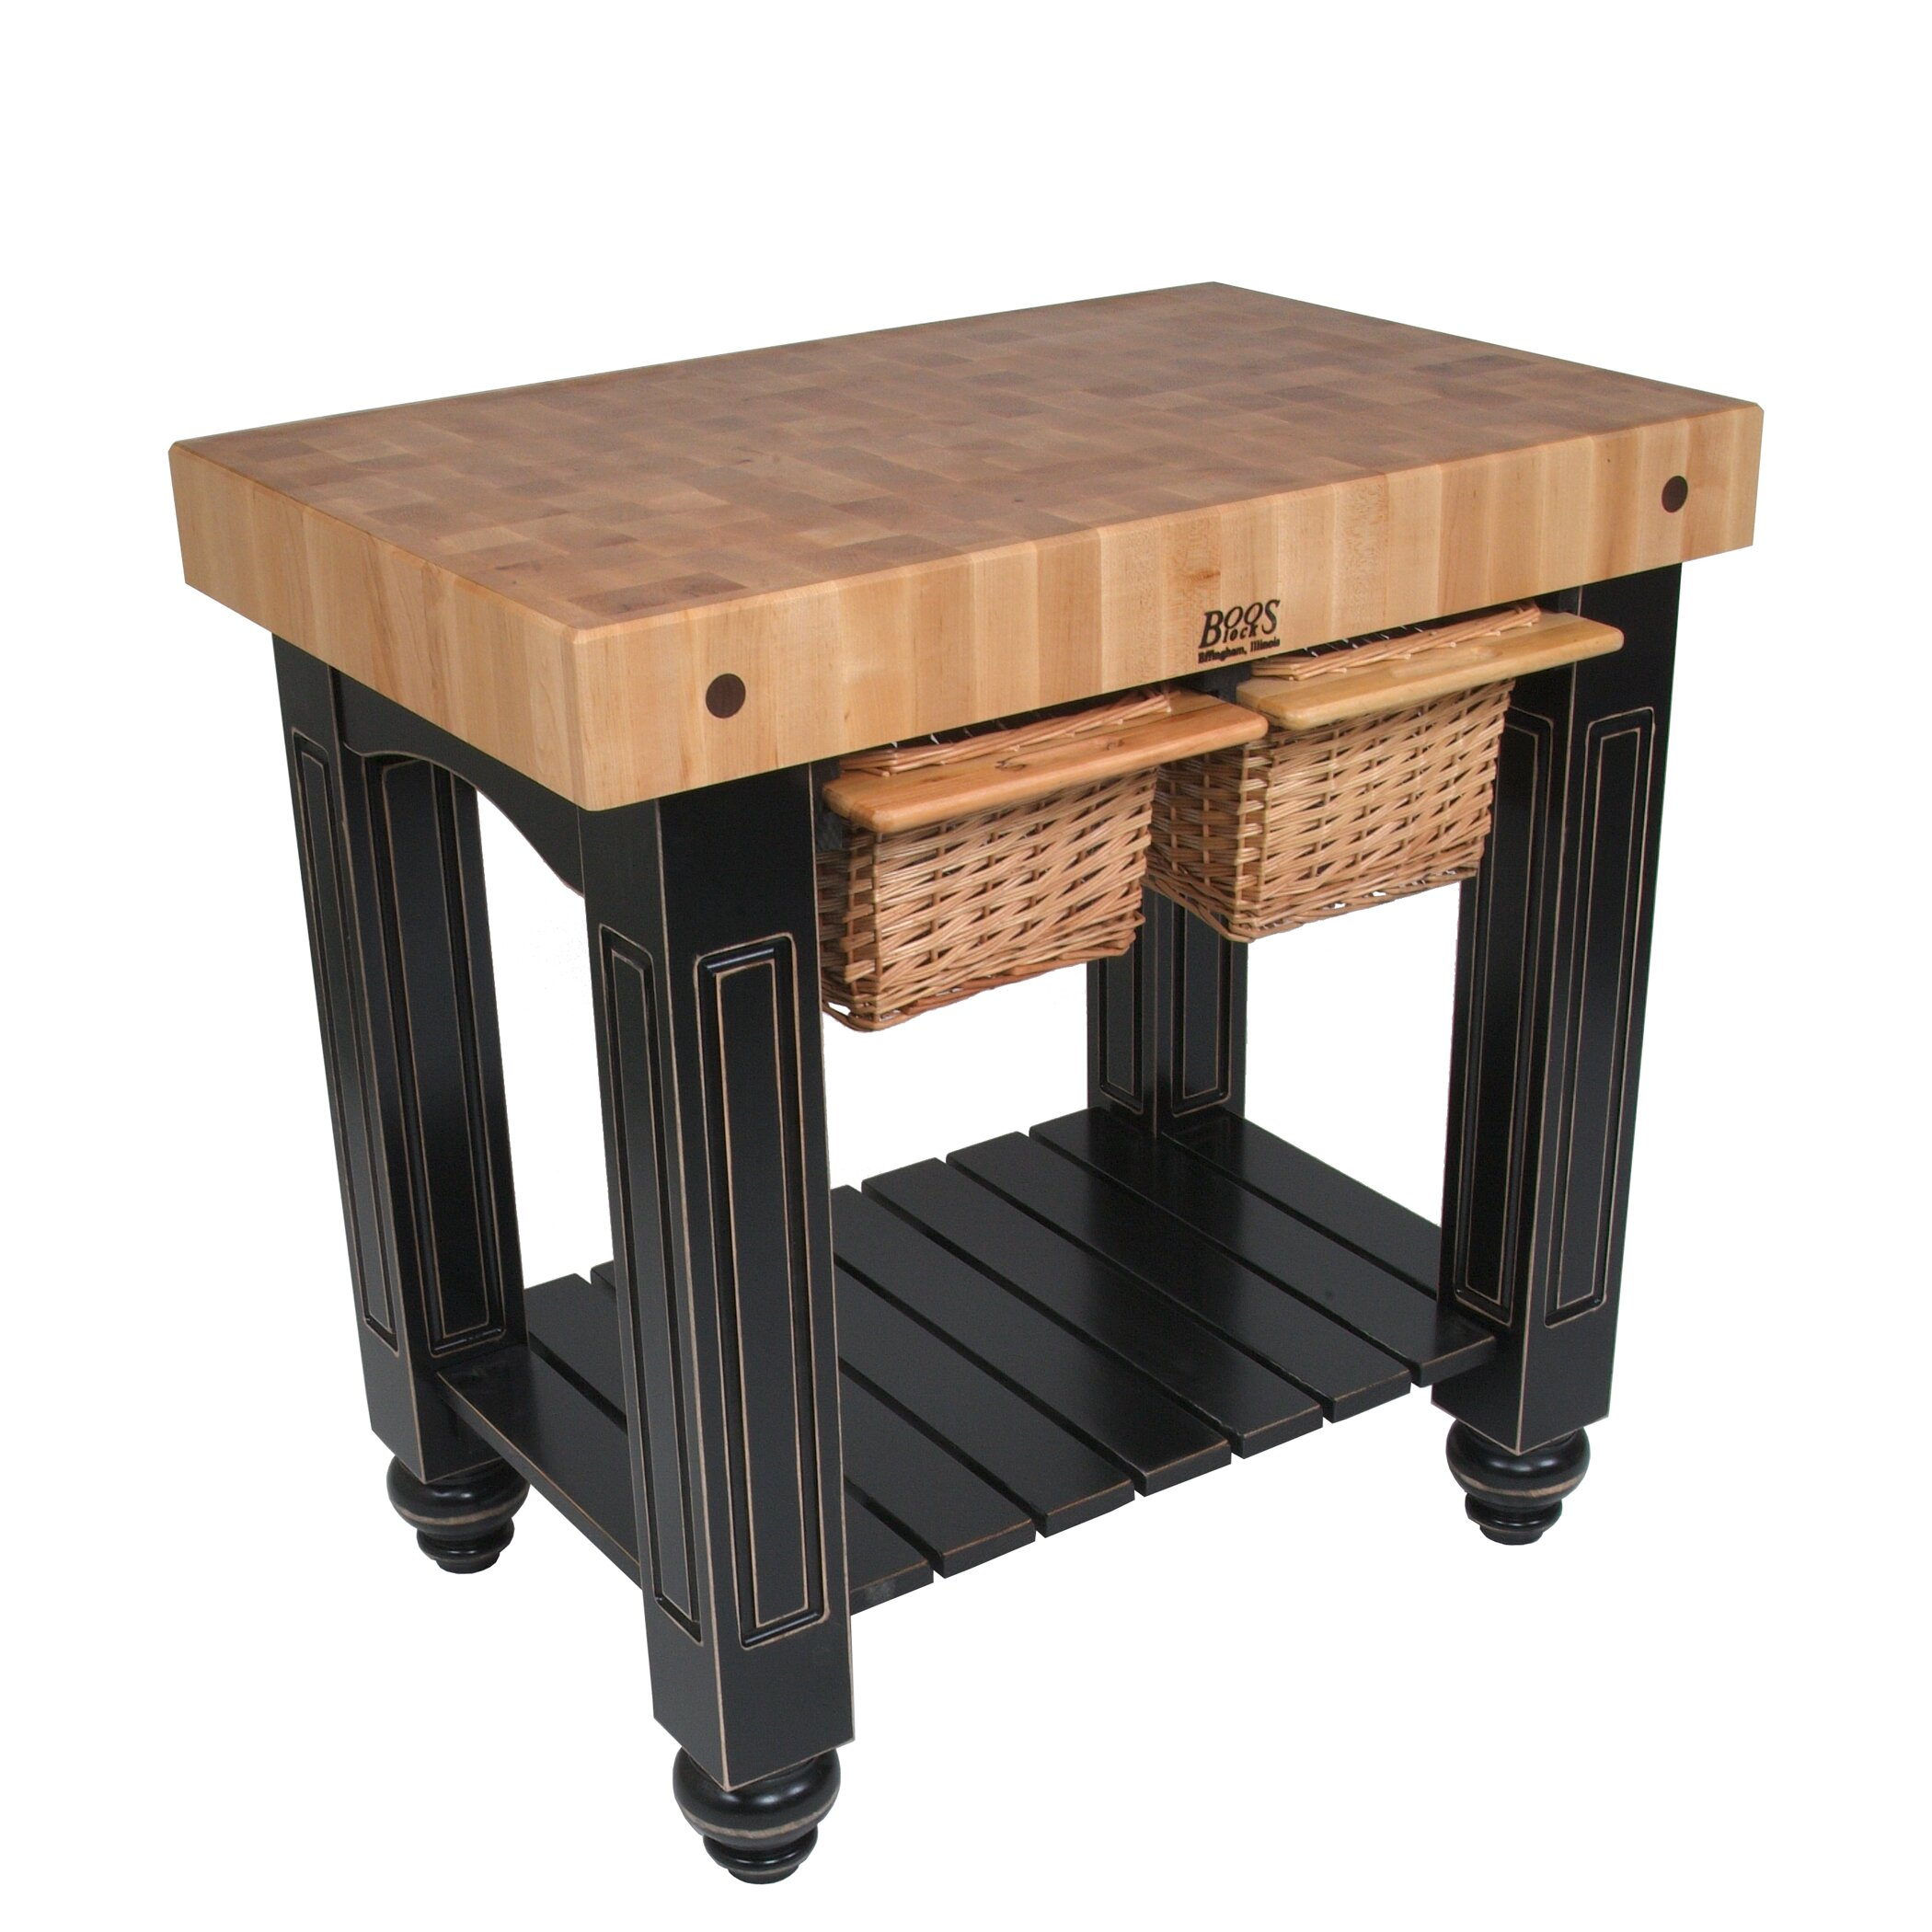 Butcher Block Red Kitchen Island : John Boos American Heritage Prep Table with Butcher Block Top & Reviews Wayfair